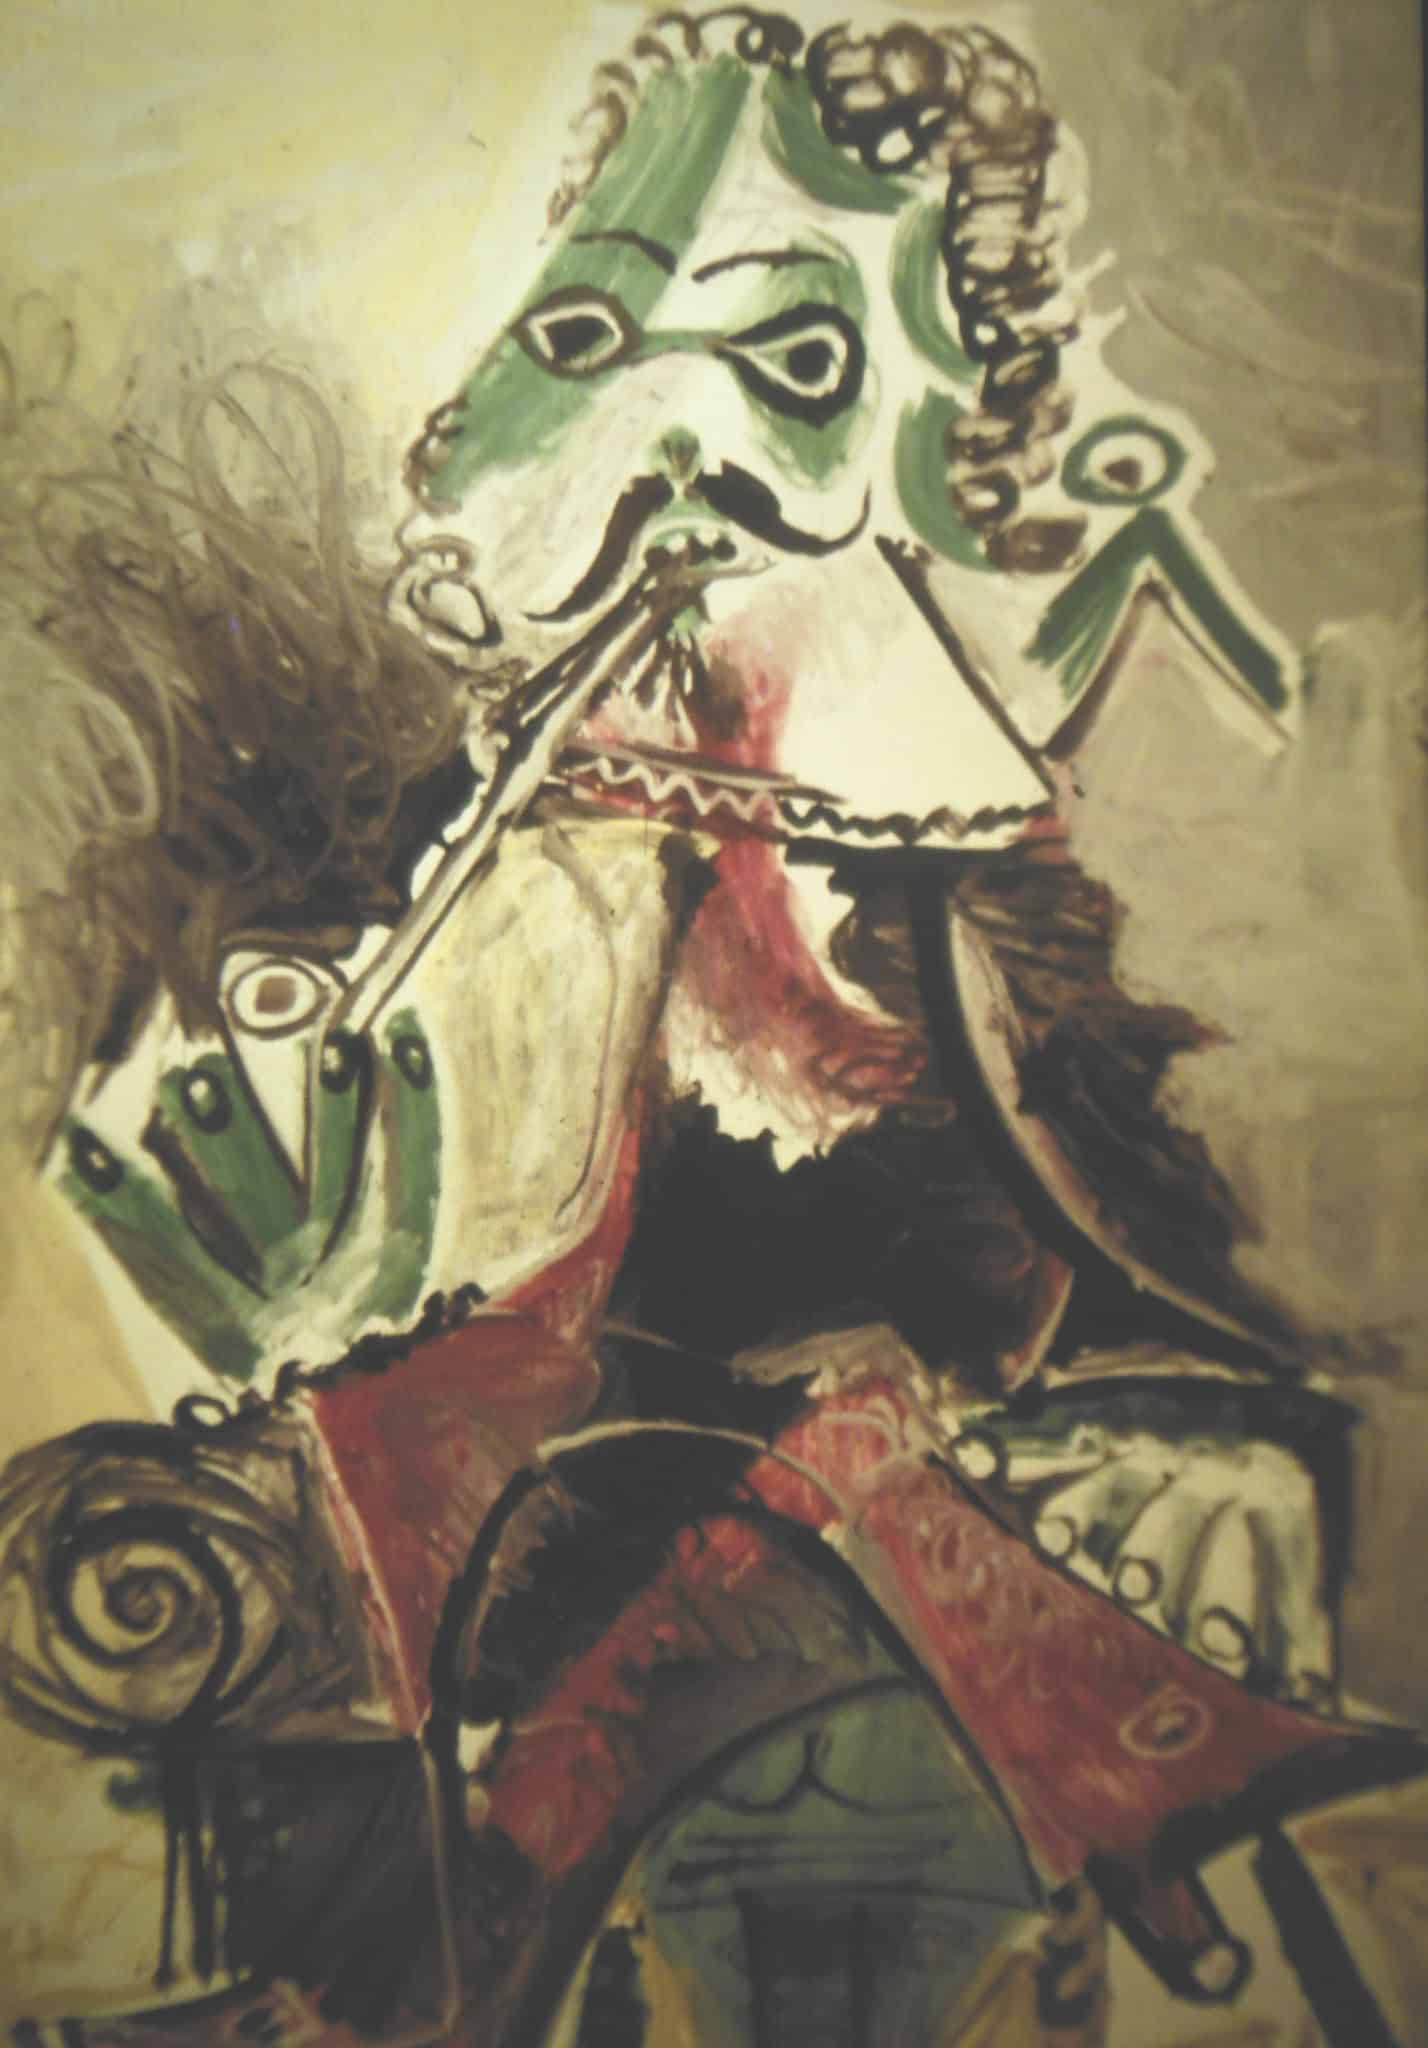 Many critics were skeptical about Picasso's late period